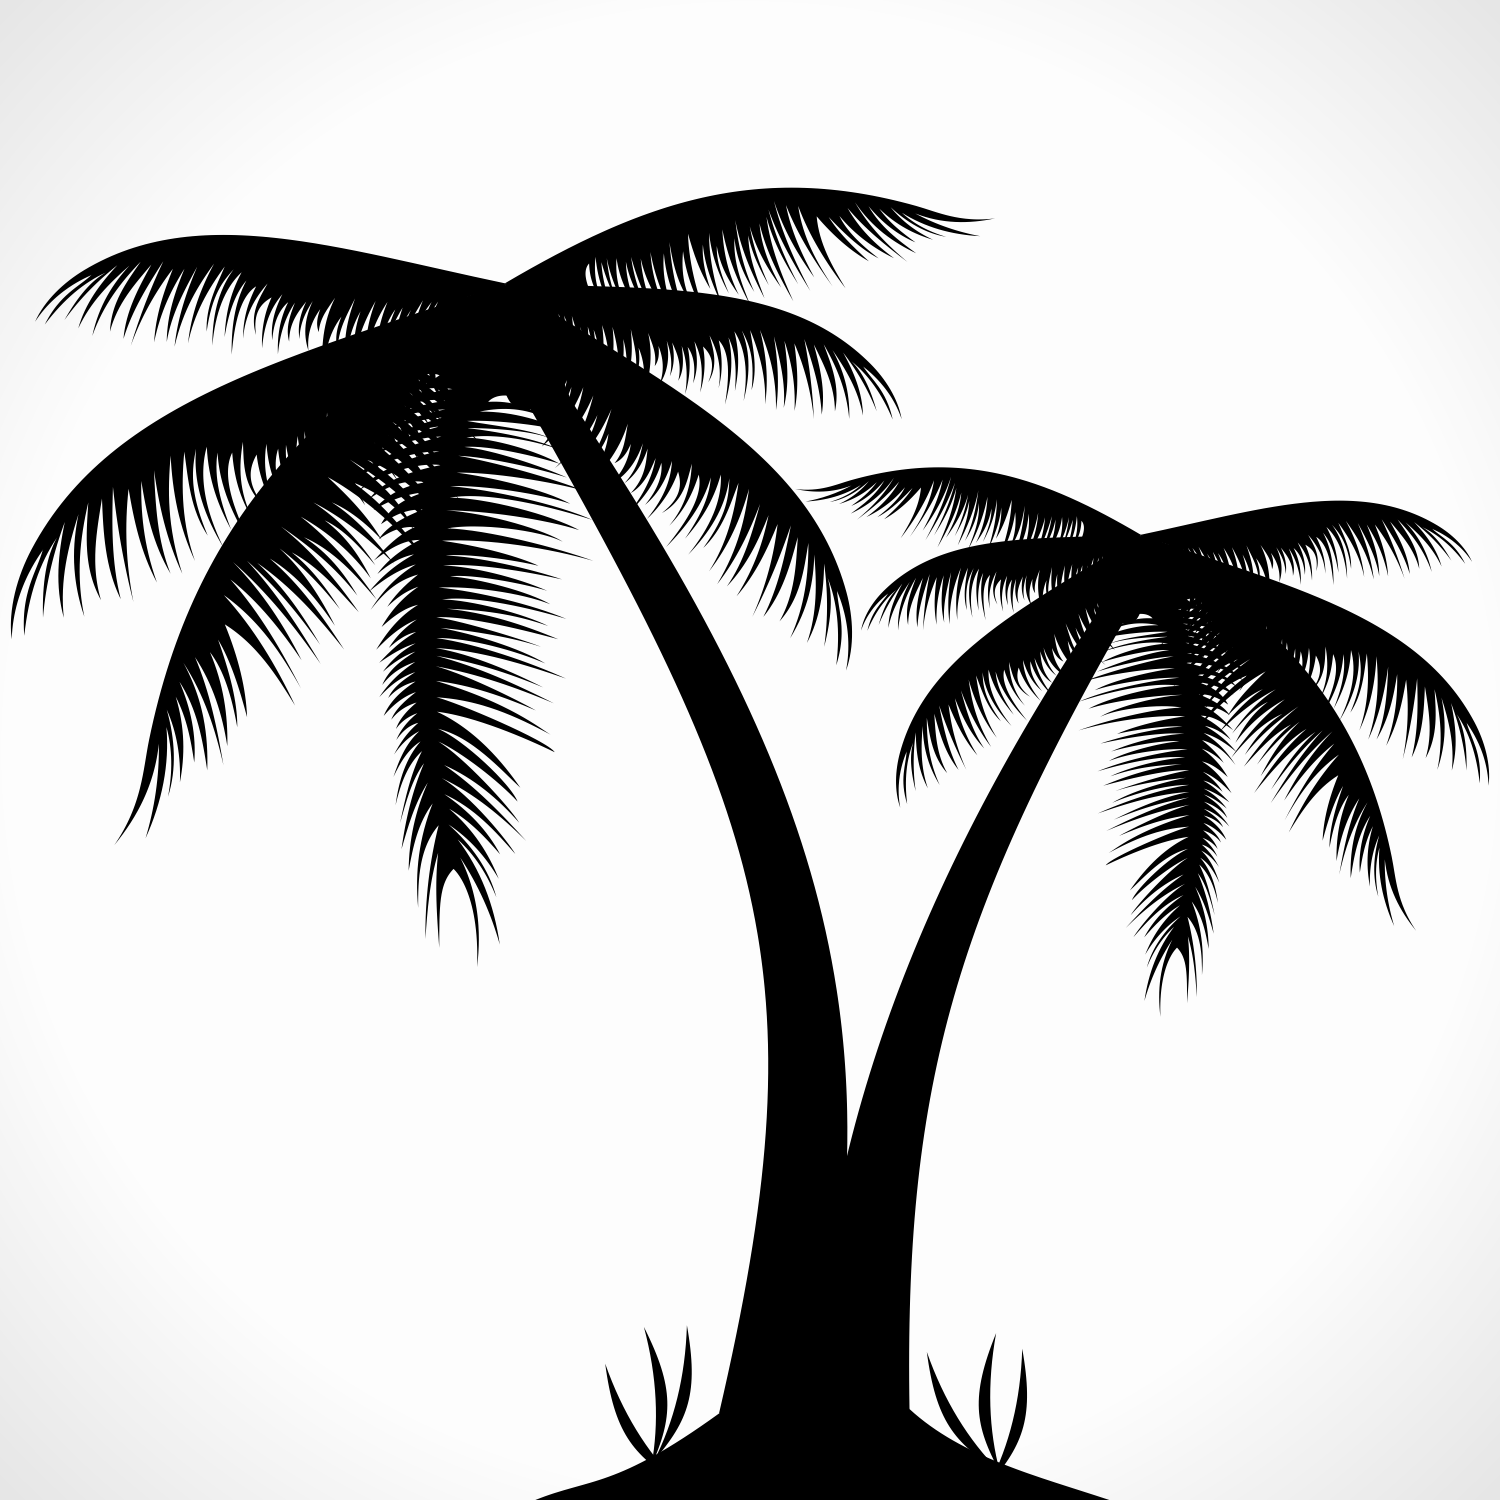 Palm tree silhouette. Free vector illustration